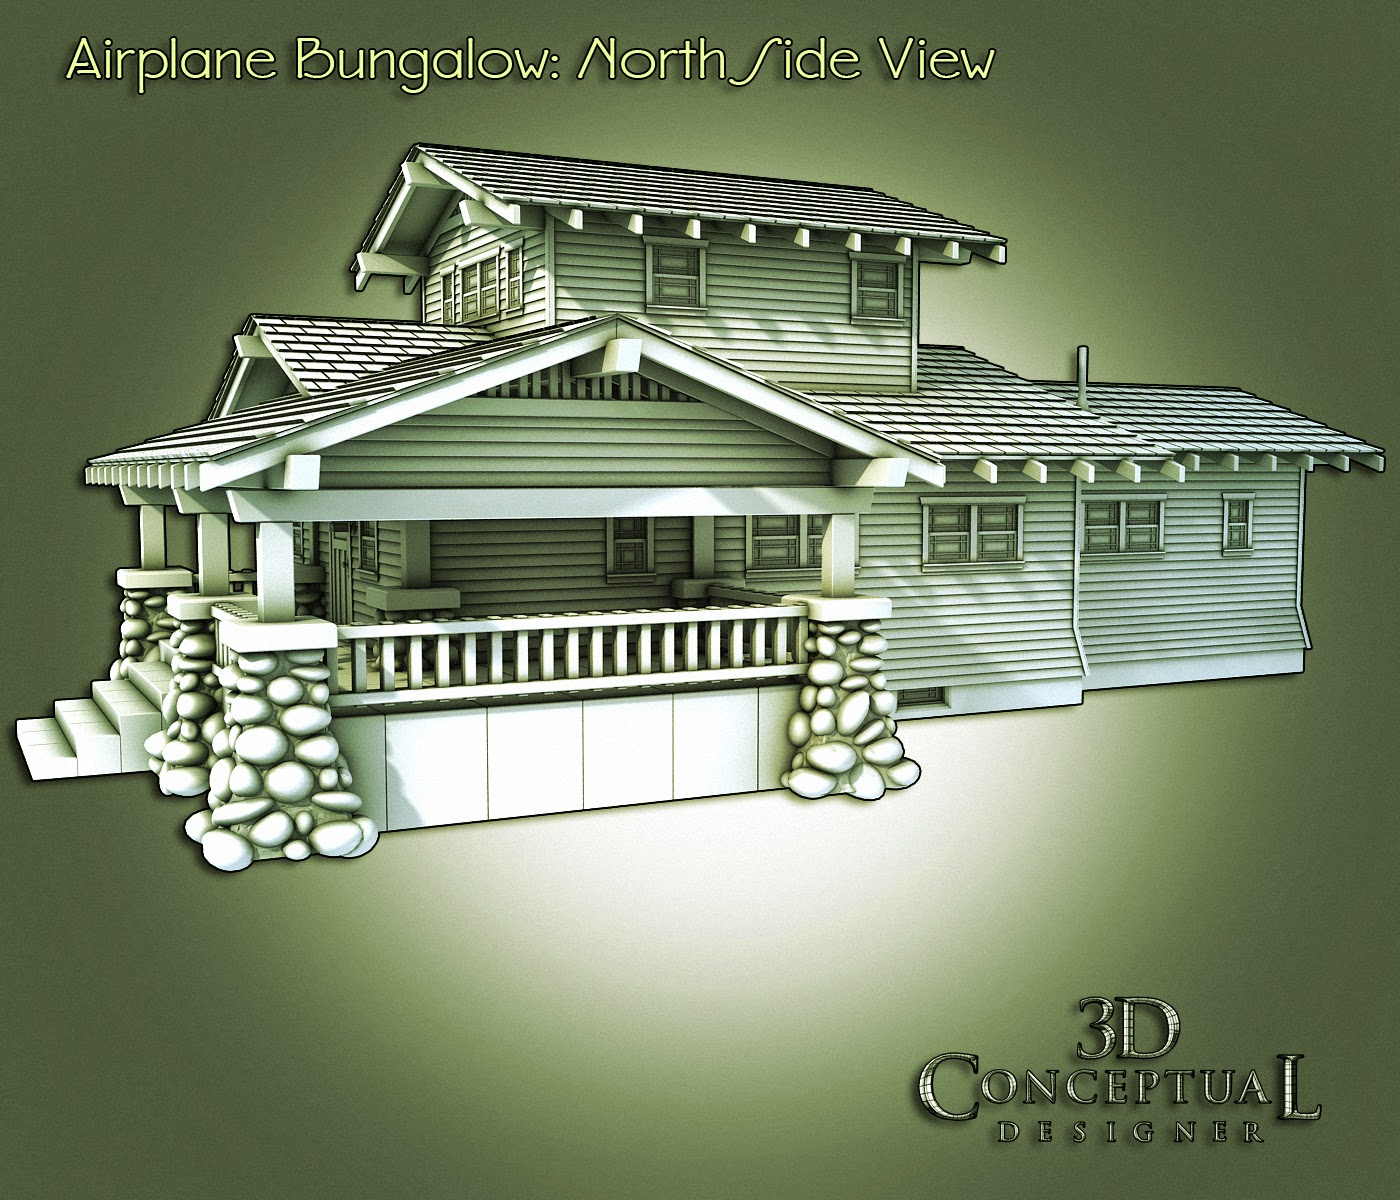 airplane craftsman home craftsman home plans ideas picture airplane craftsman home craftsman home plans ideas picture